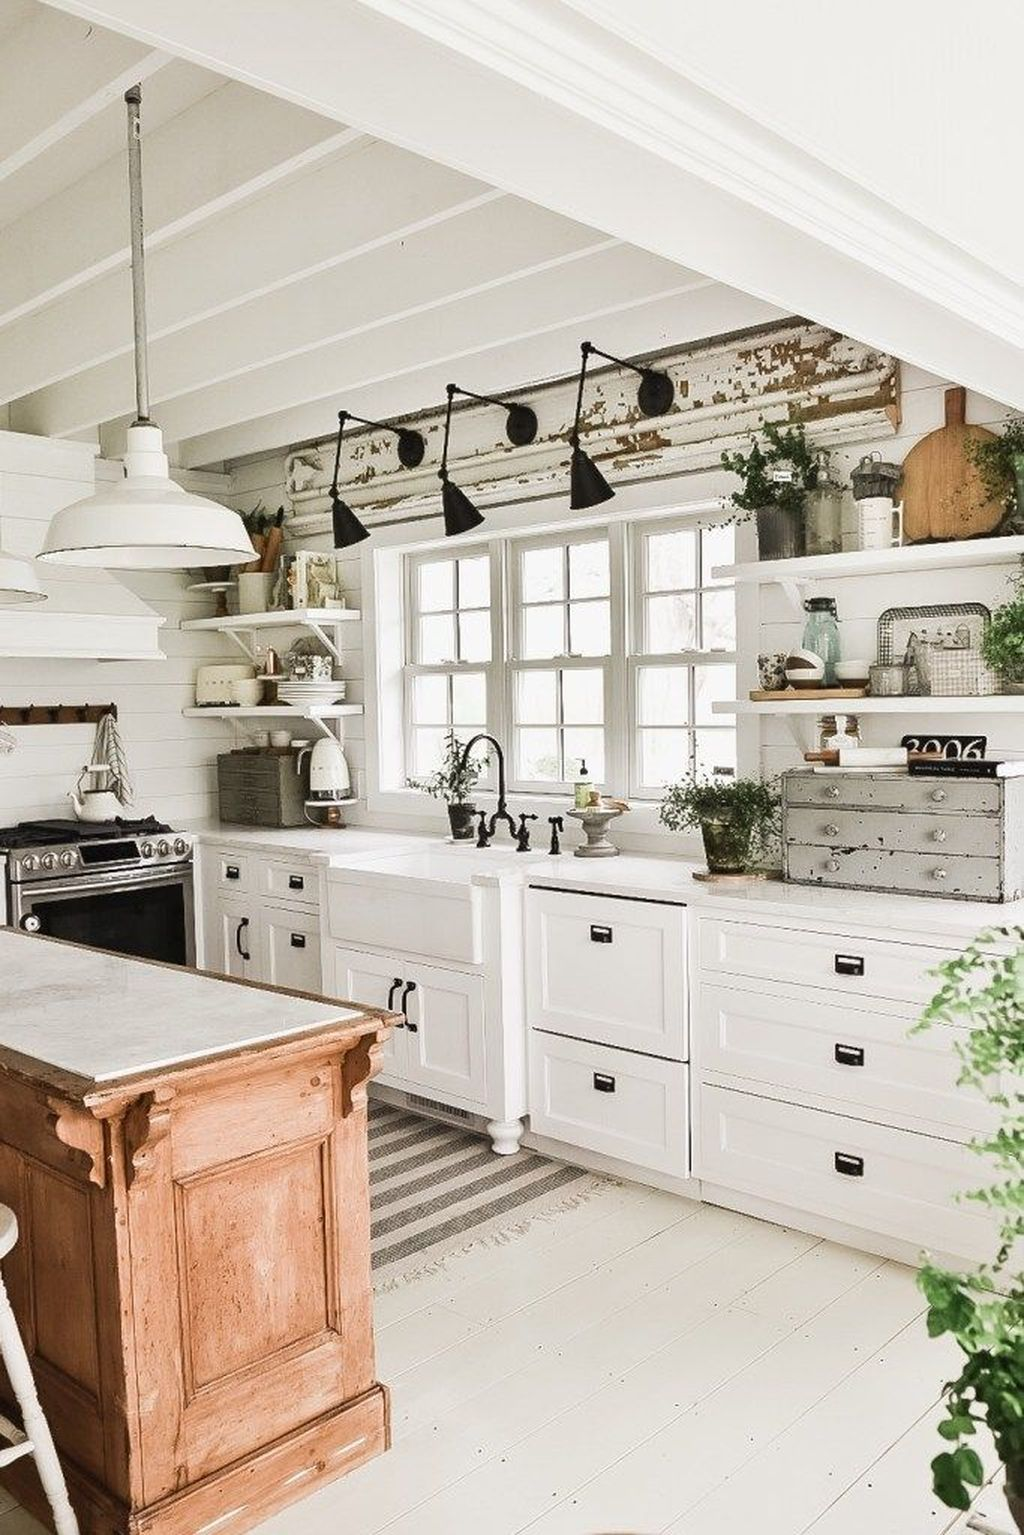 The Best Ideas To Decorate Interior Design With Farmhouse Style 30